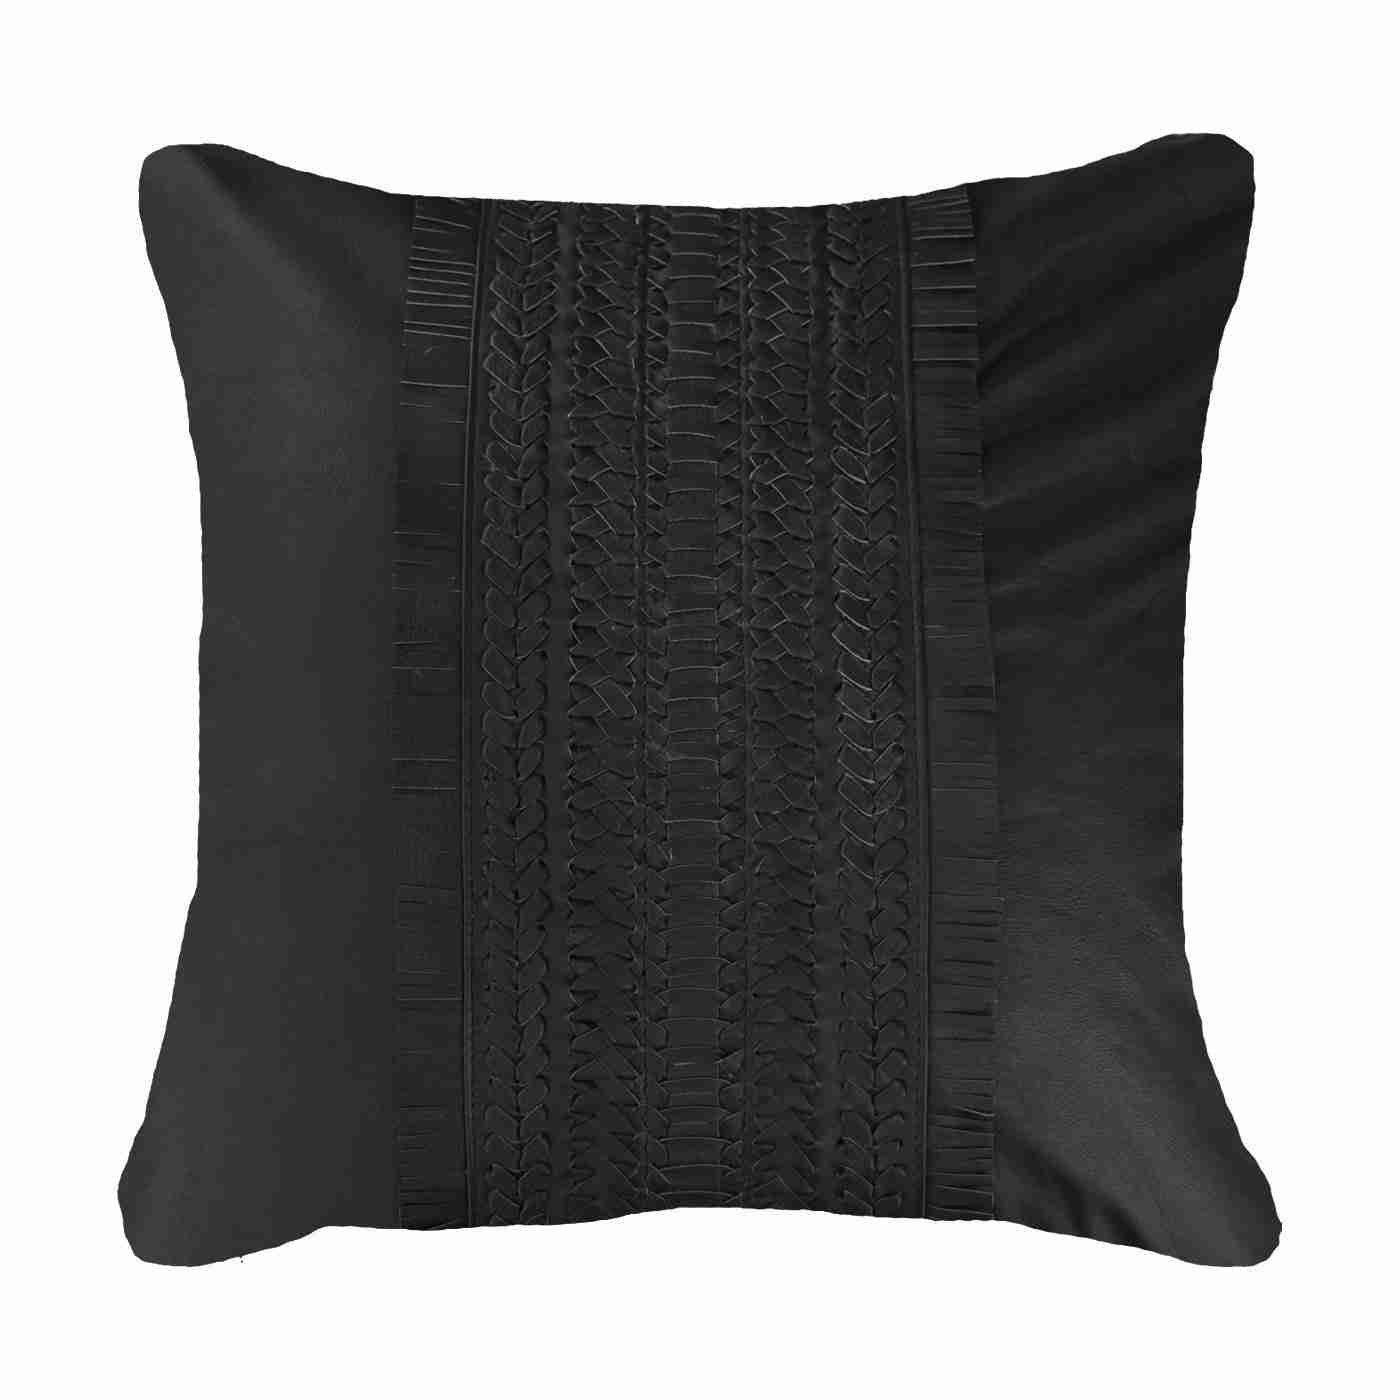 Bandhini Homewear Design Medium Cushion Black / 19 x 19 Leather Voyager Black Medium Cushion 50 x 50 cm